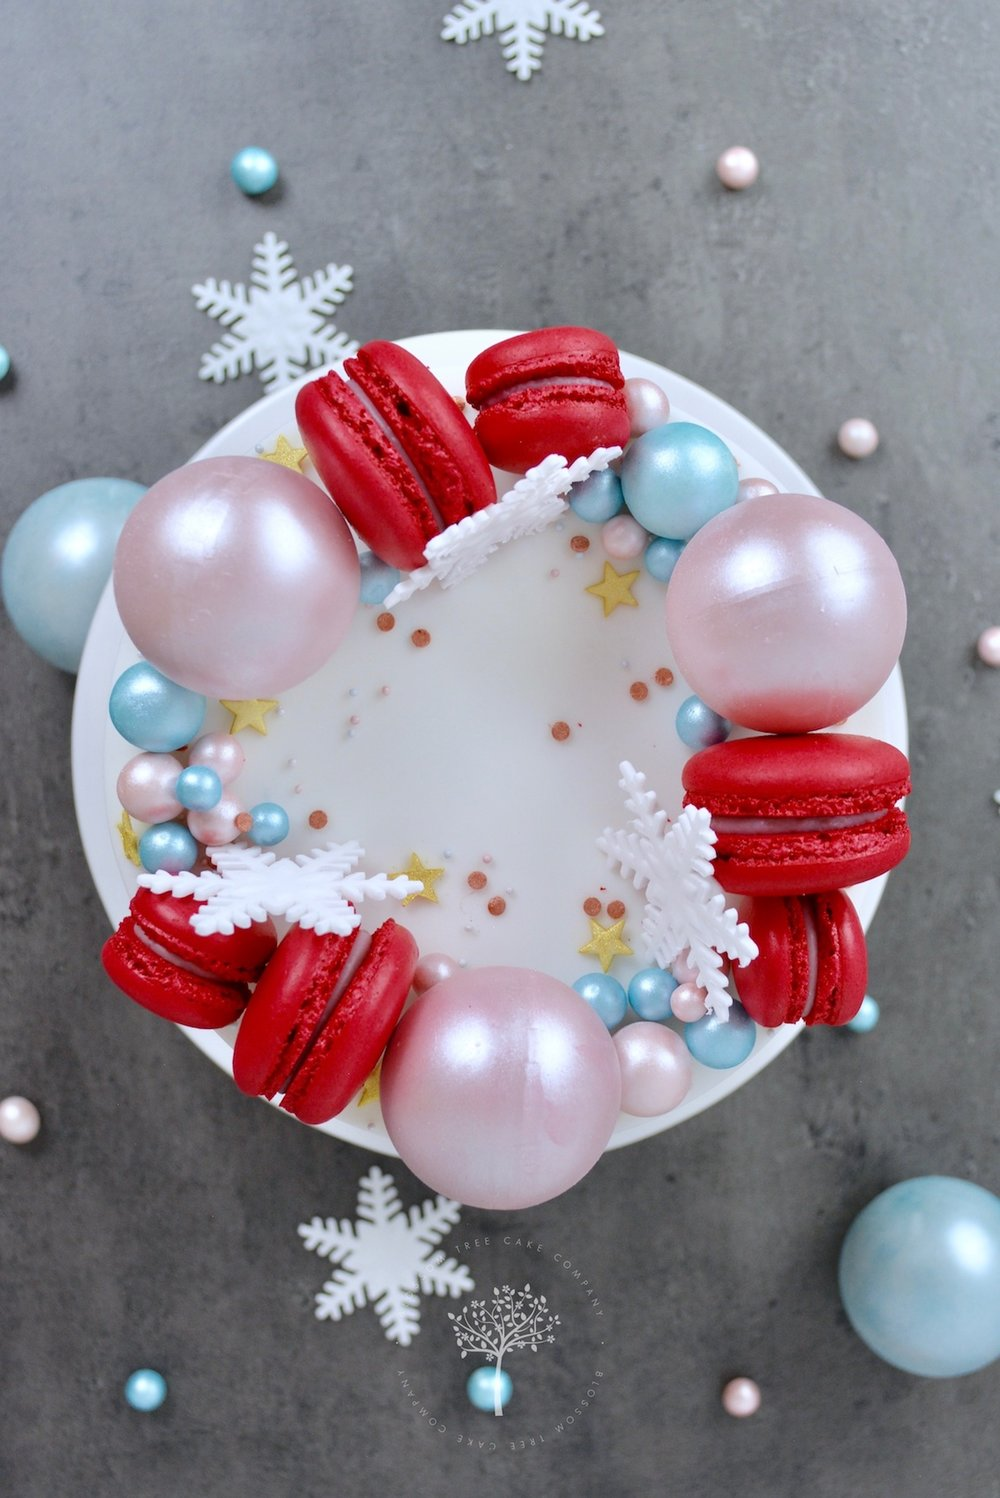 2017 Christmas Cake by Blossom Tree Cake Company Harrogate North Yorkshire - aerial.jpg